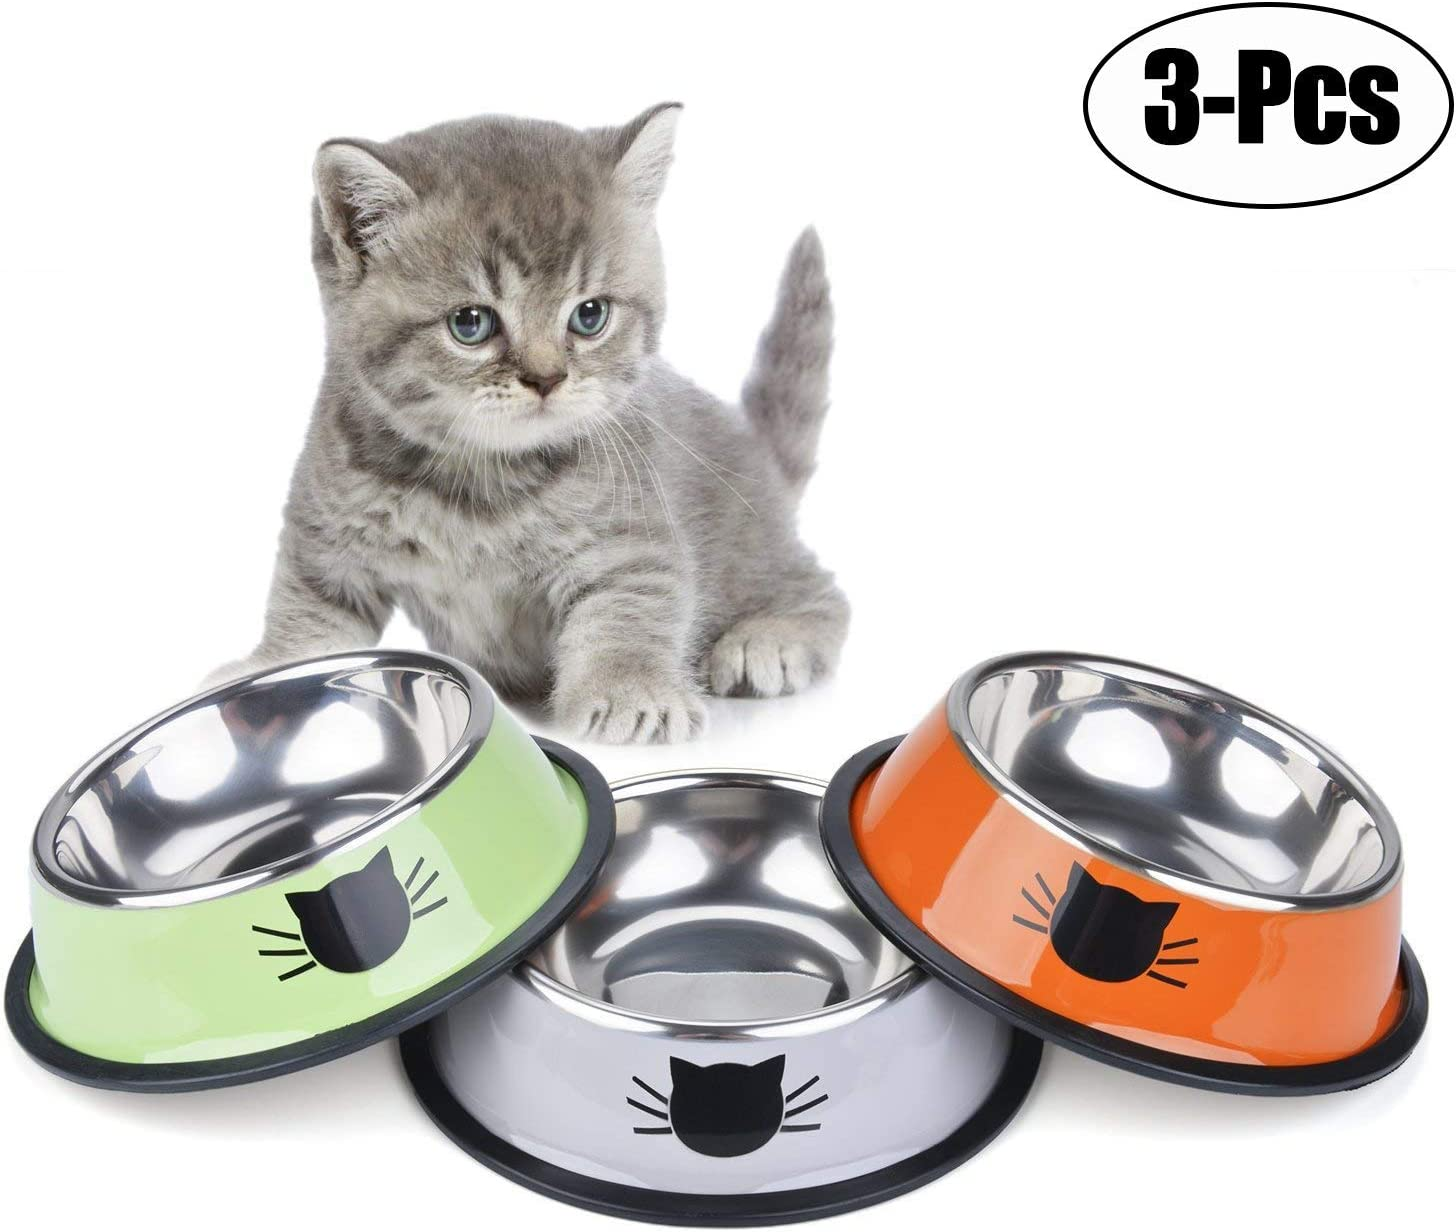 Legendog 3PCS Pet Bowl Stainless Steel Non-Skid Base Dog Bowl Cat Bowl with 2 Food Scoop